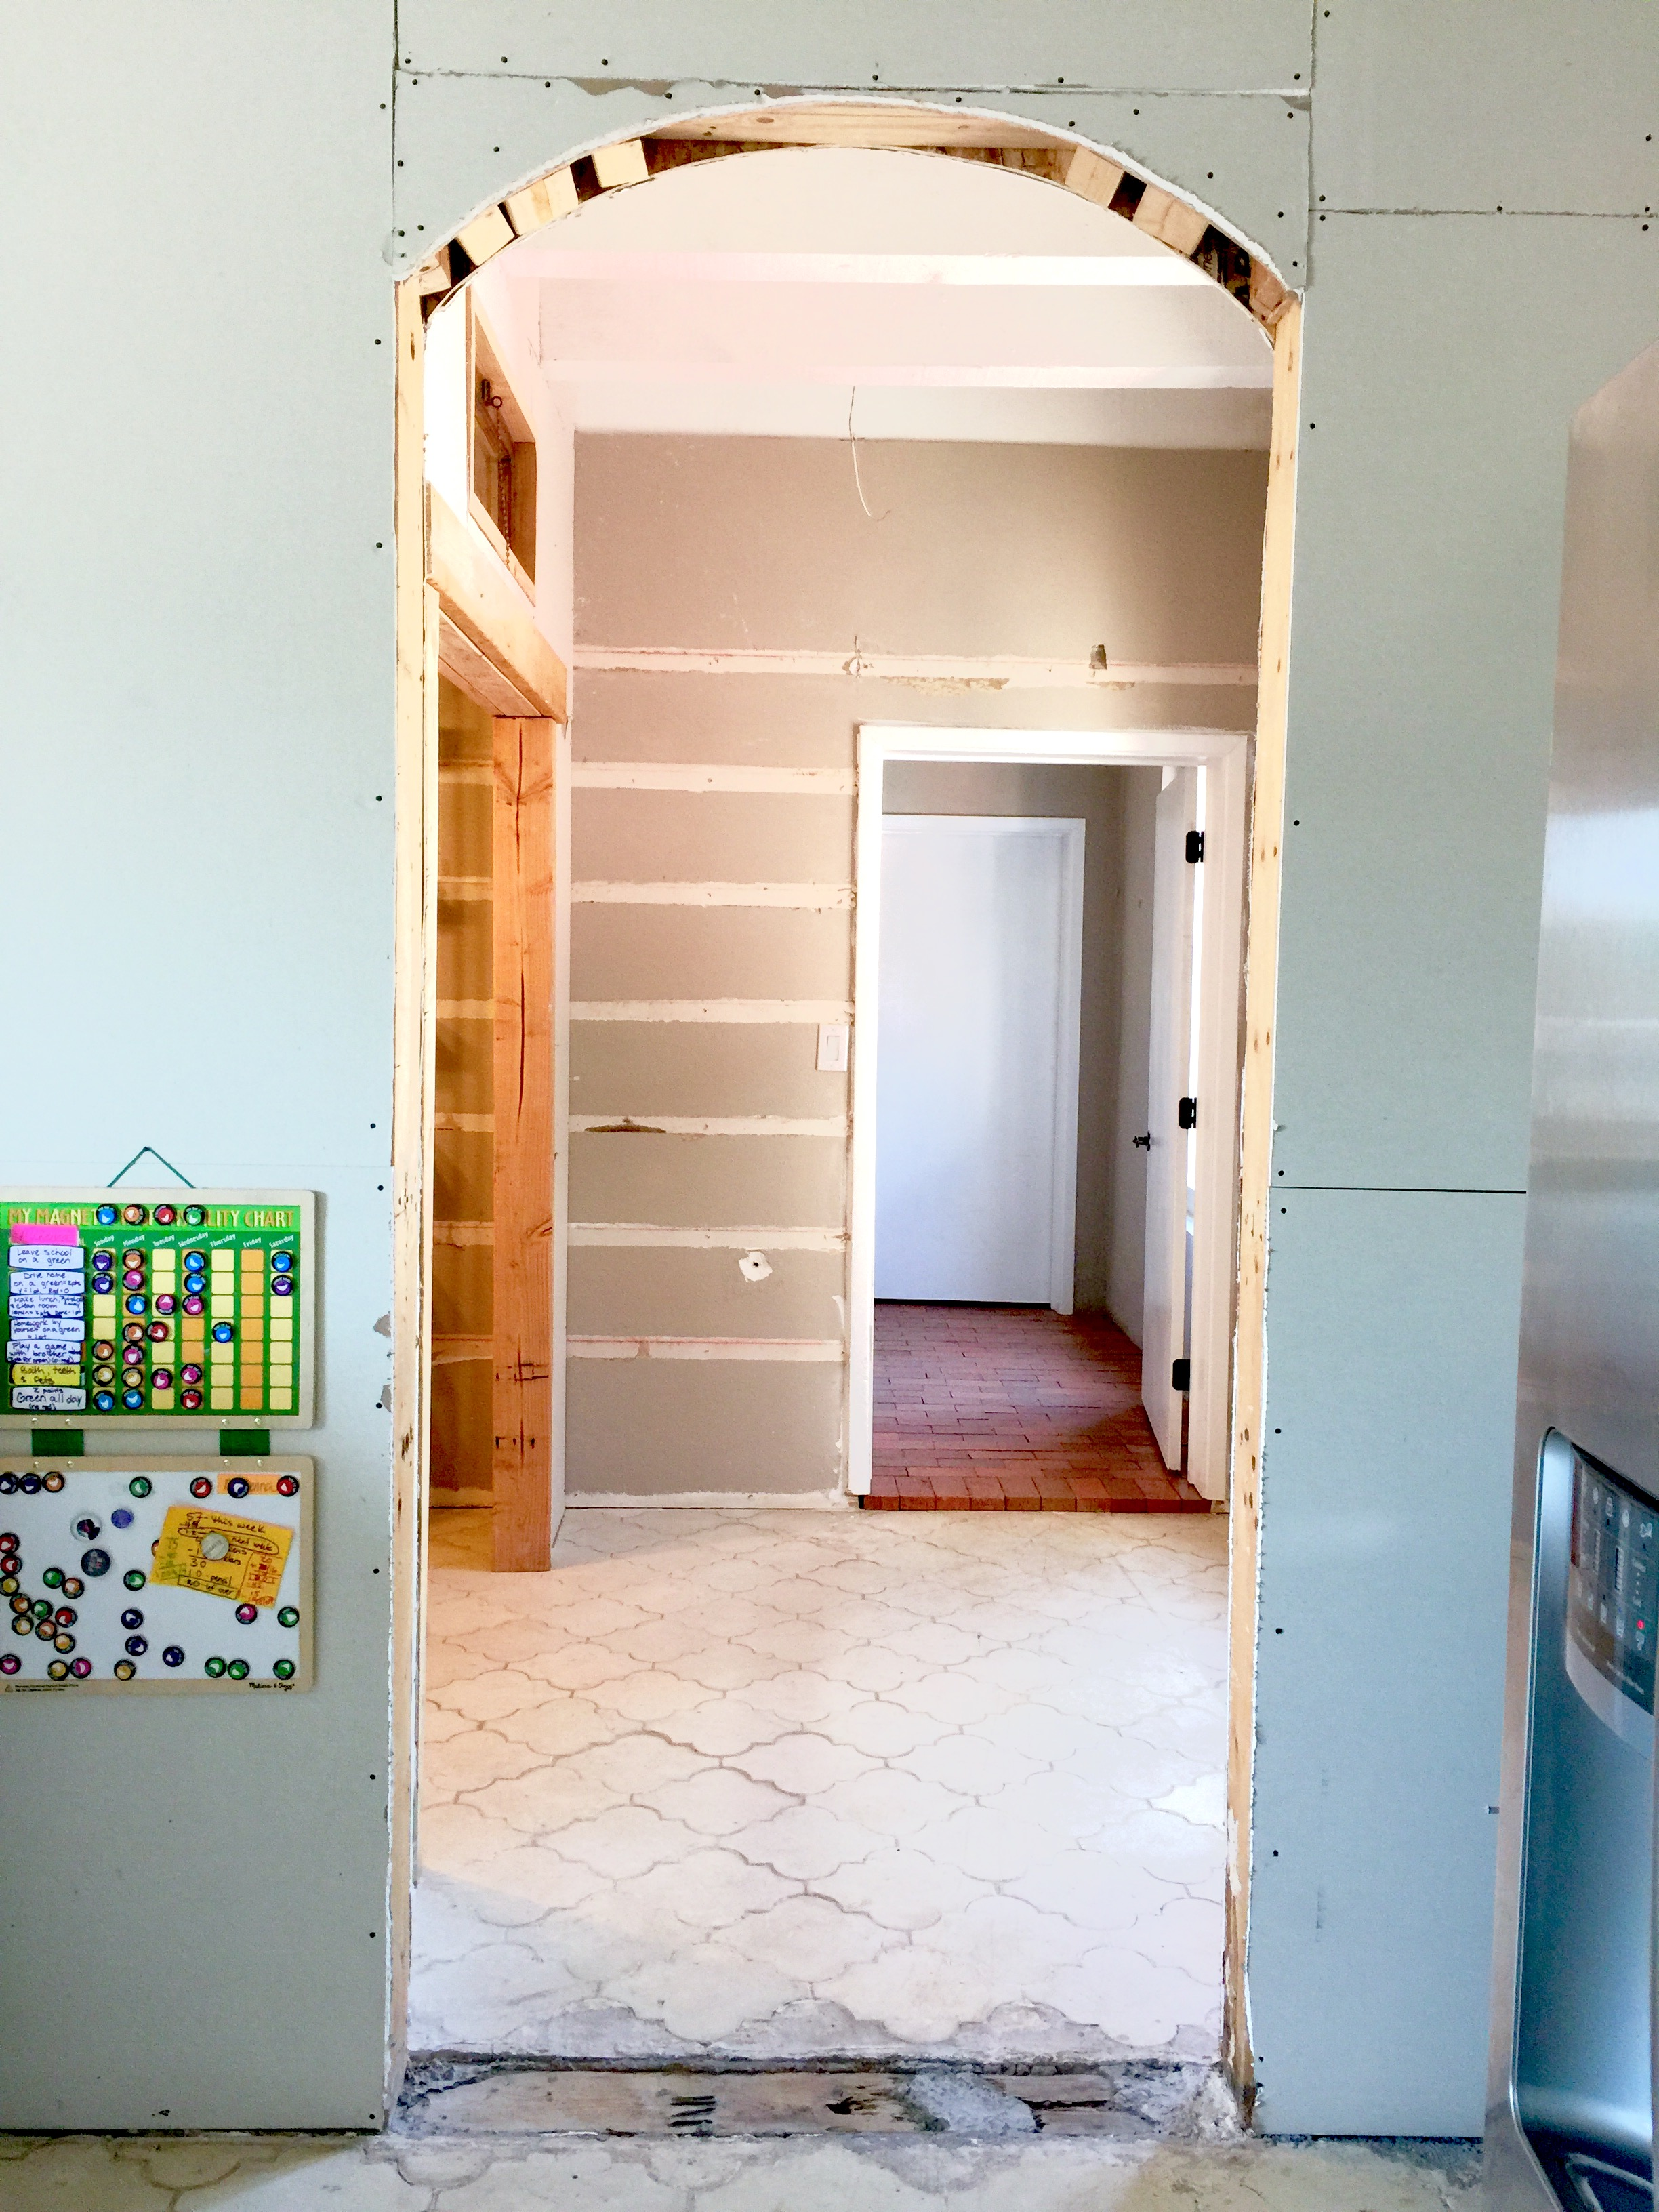 Pantry entry during construction